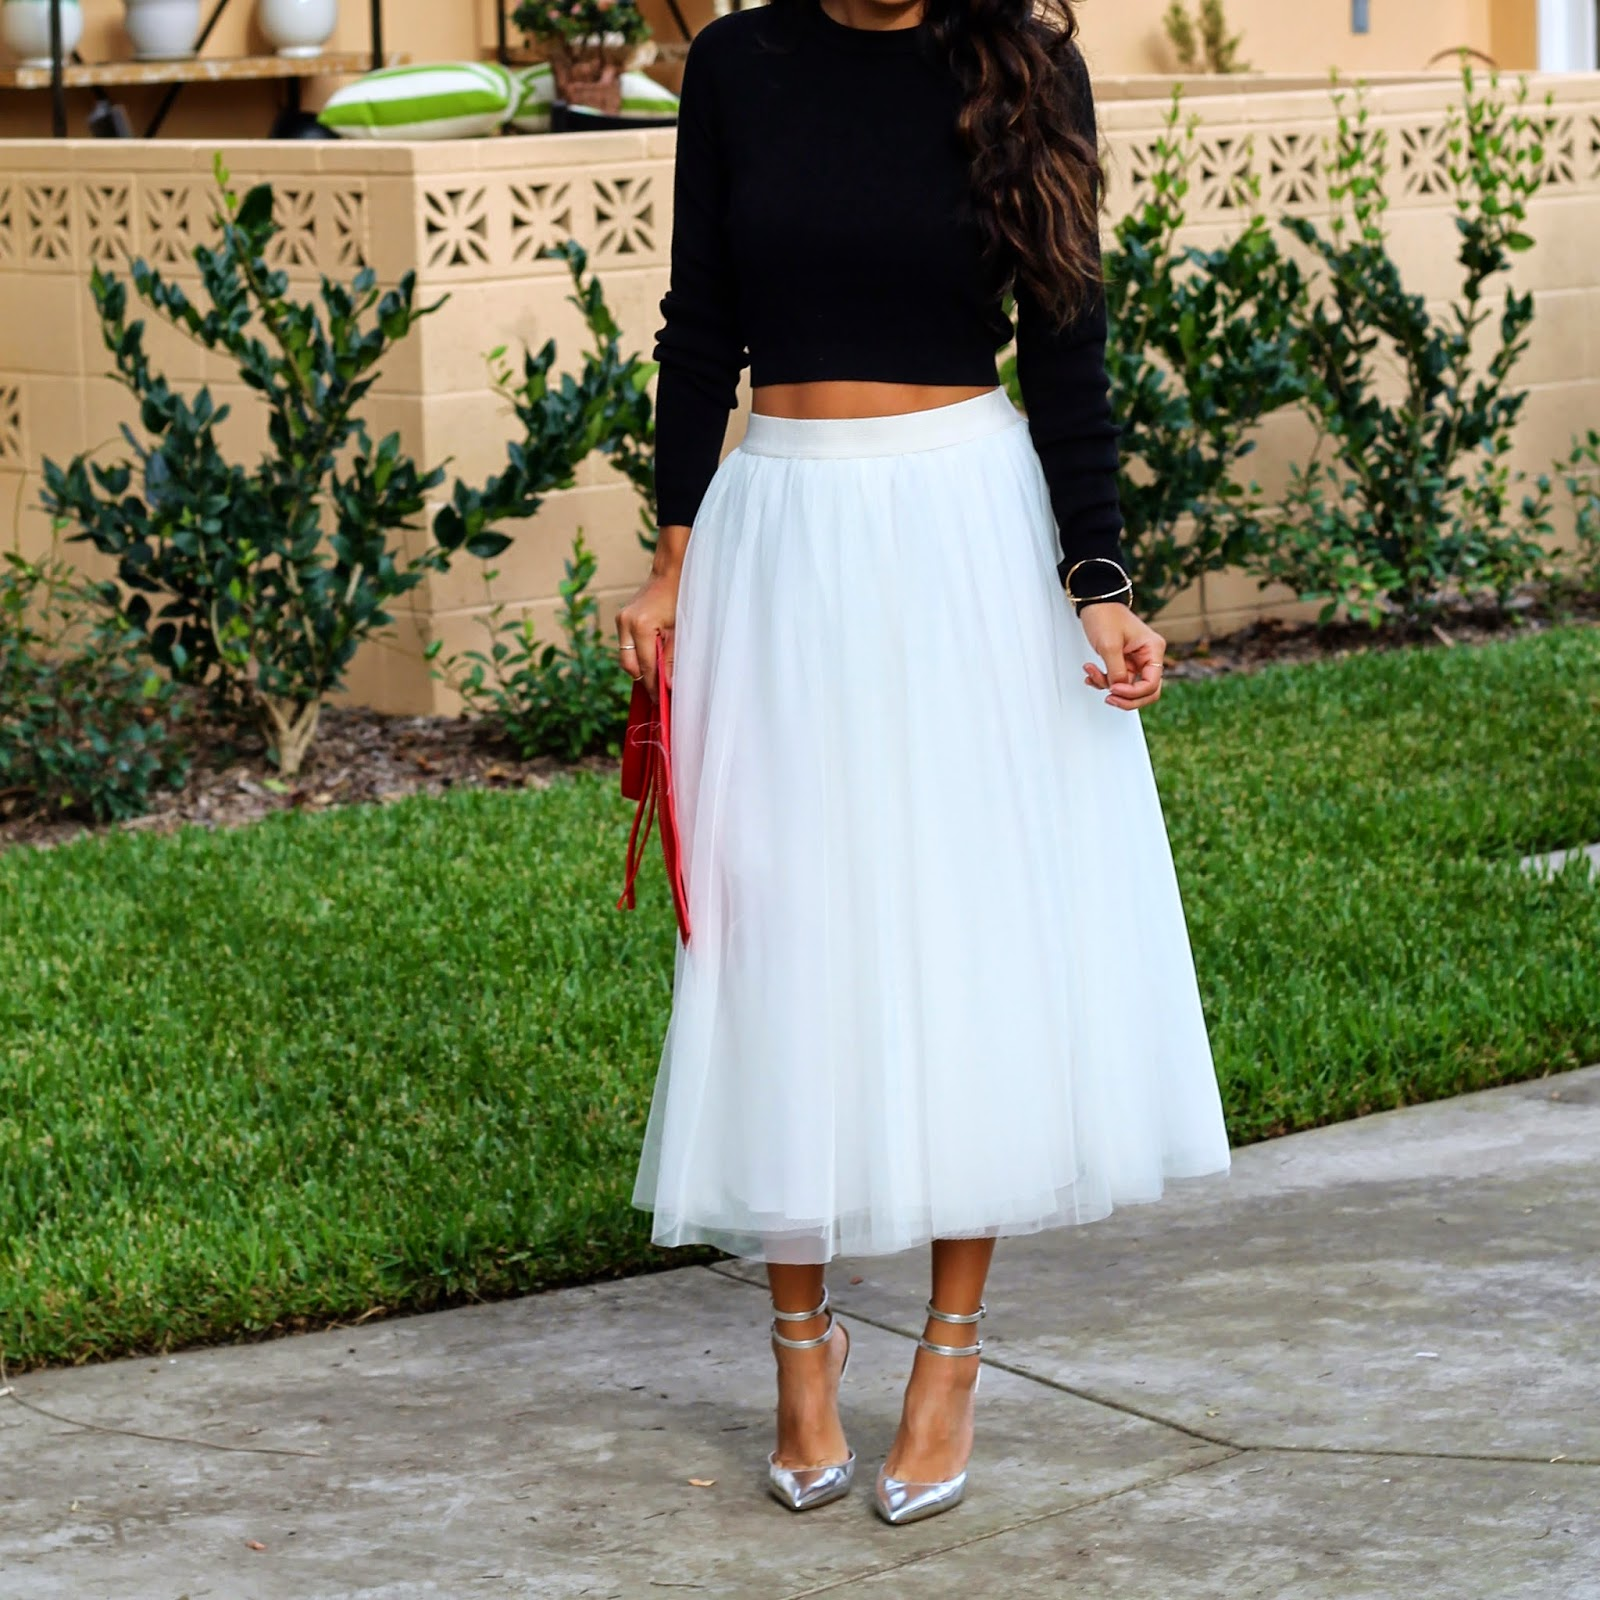 what to wear for Christmas, Holiday Style, Tulle Skirt, Ballerina Skirt Outfit